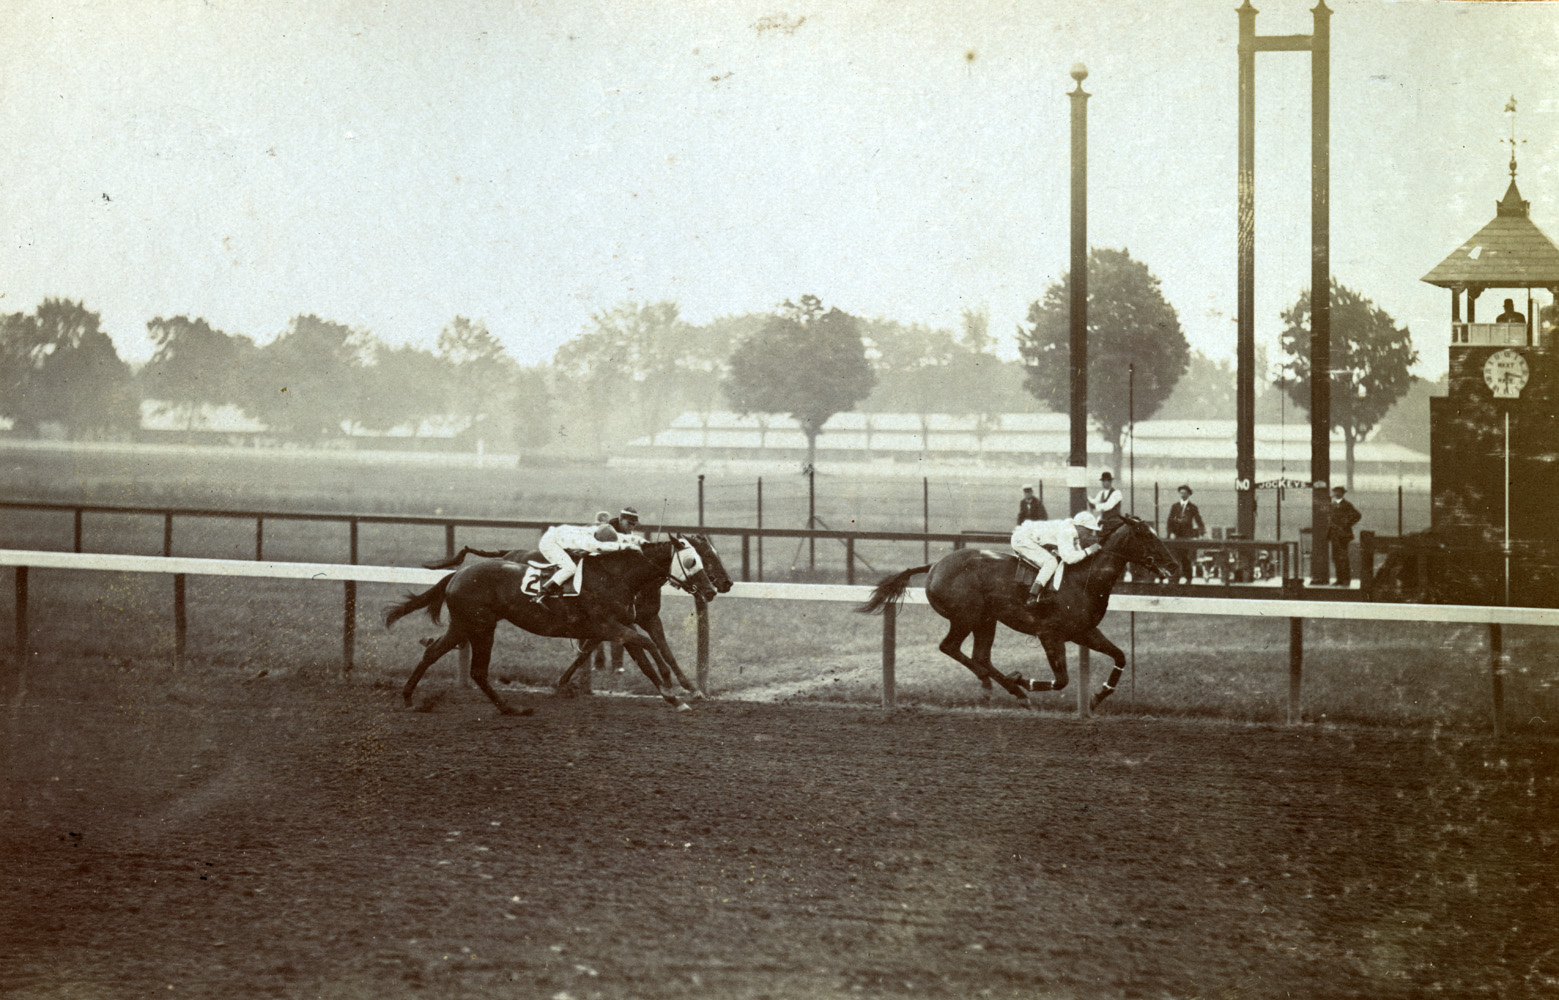 Maskette (Joe Notter up) winning the 1908 Spinaway at Saratoga (Keeneland Library Hemment Collection)